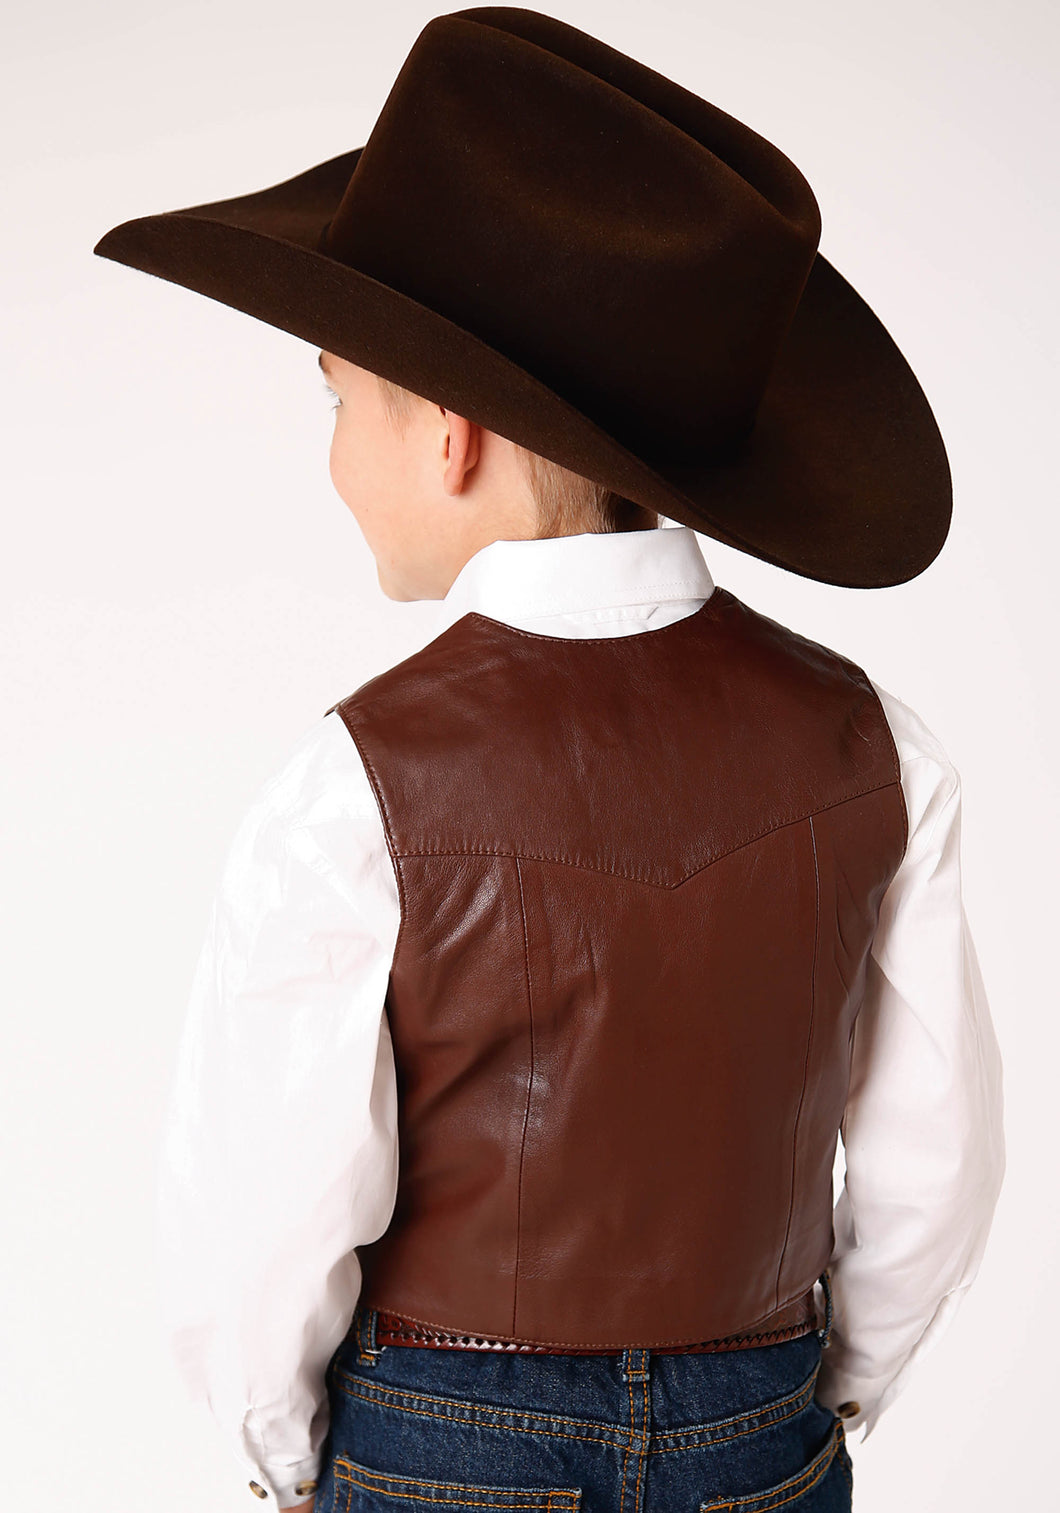 Roper Boys Vest Leatherow Kids Vest Dark Brown Lamb Nappa Vest